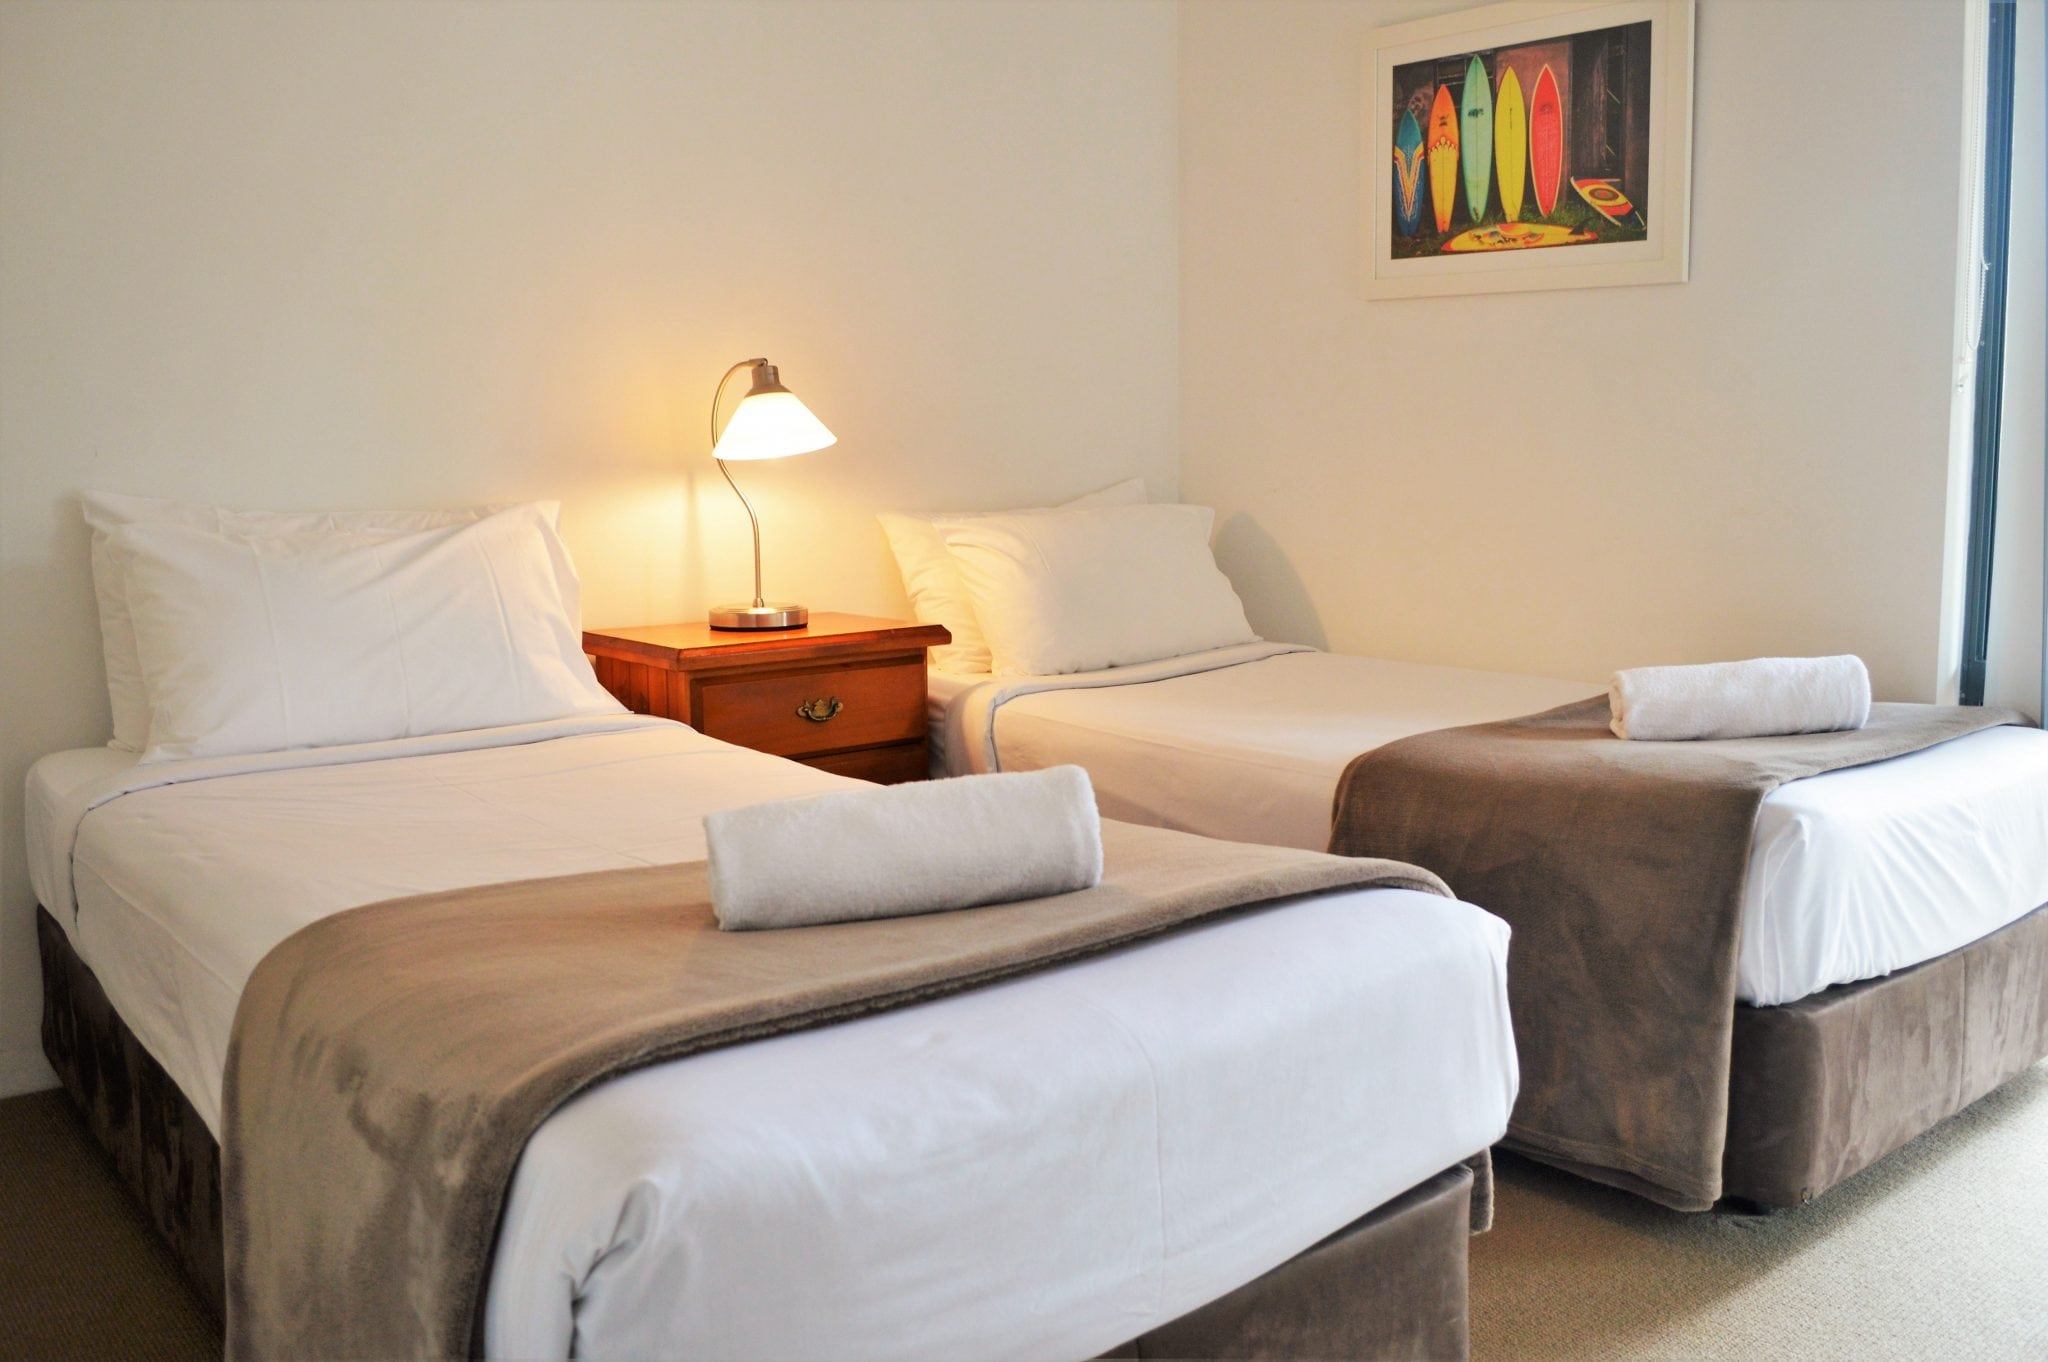 Choice of 2 x single beds or 1x queen bed